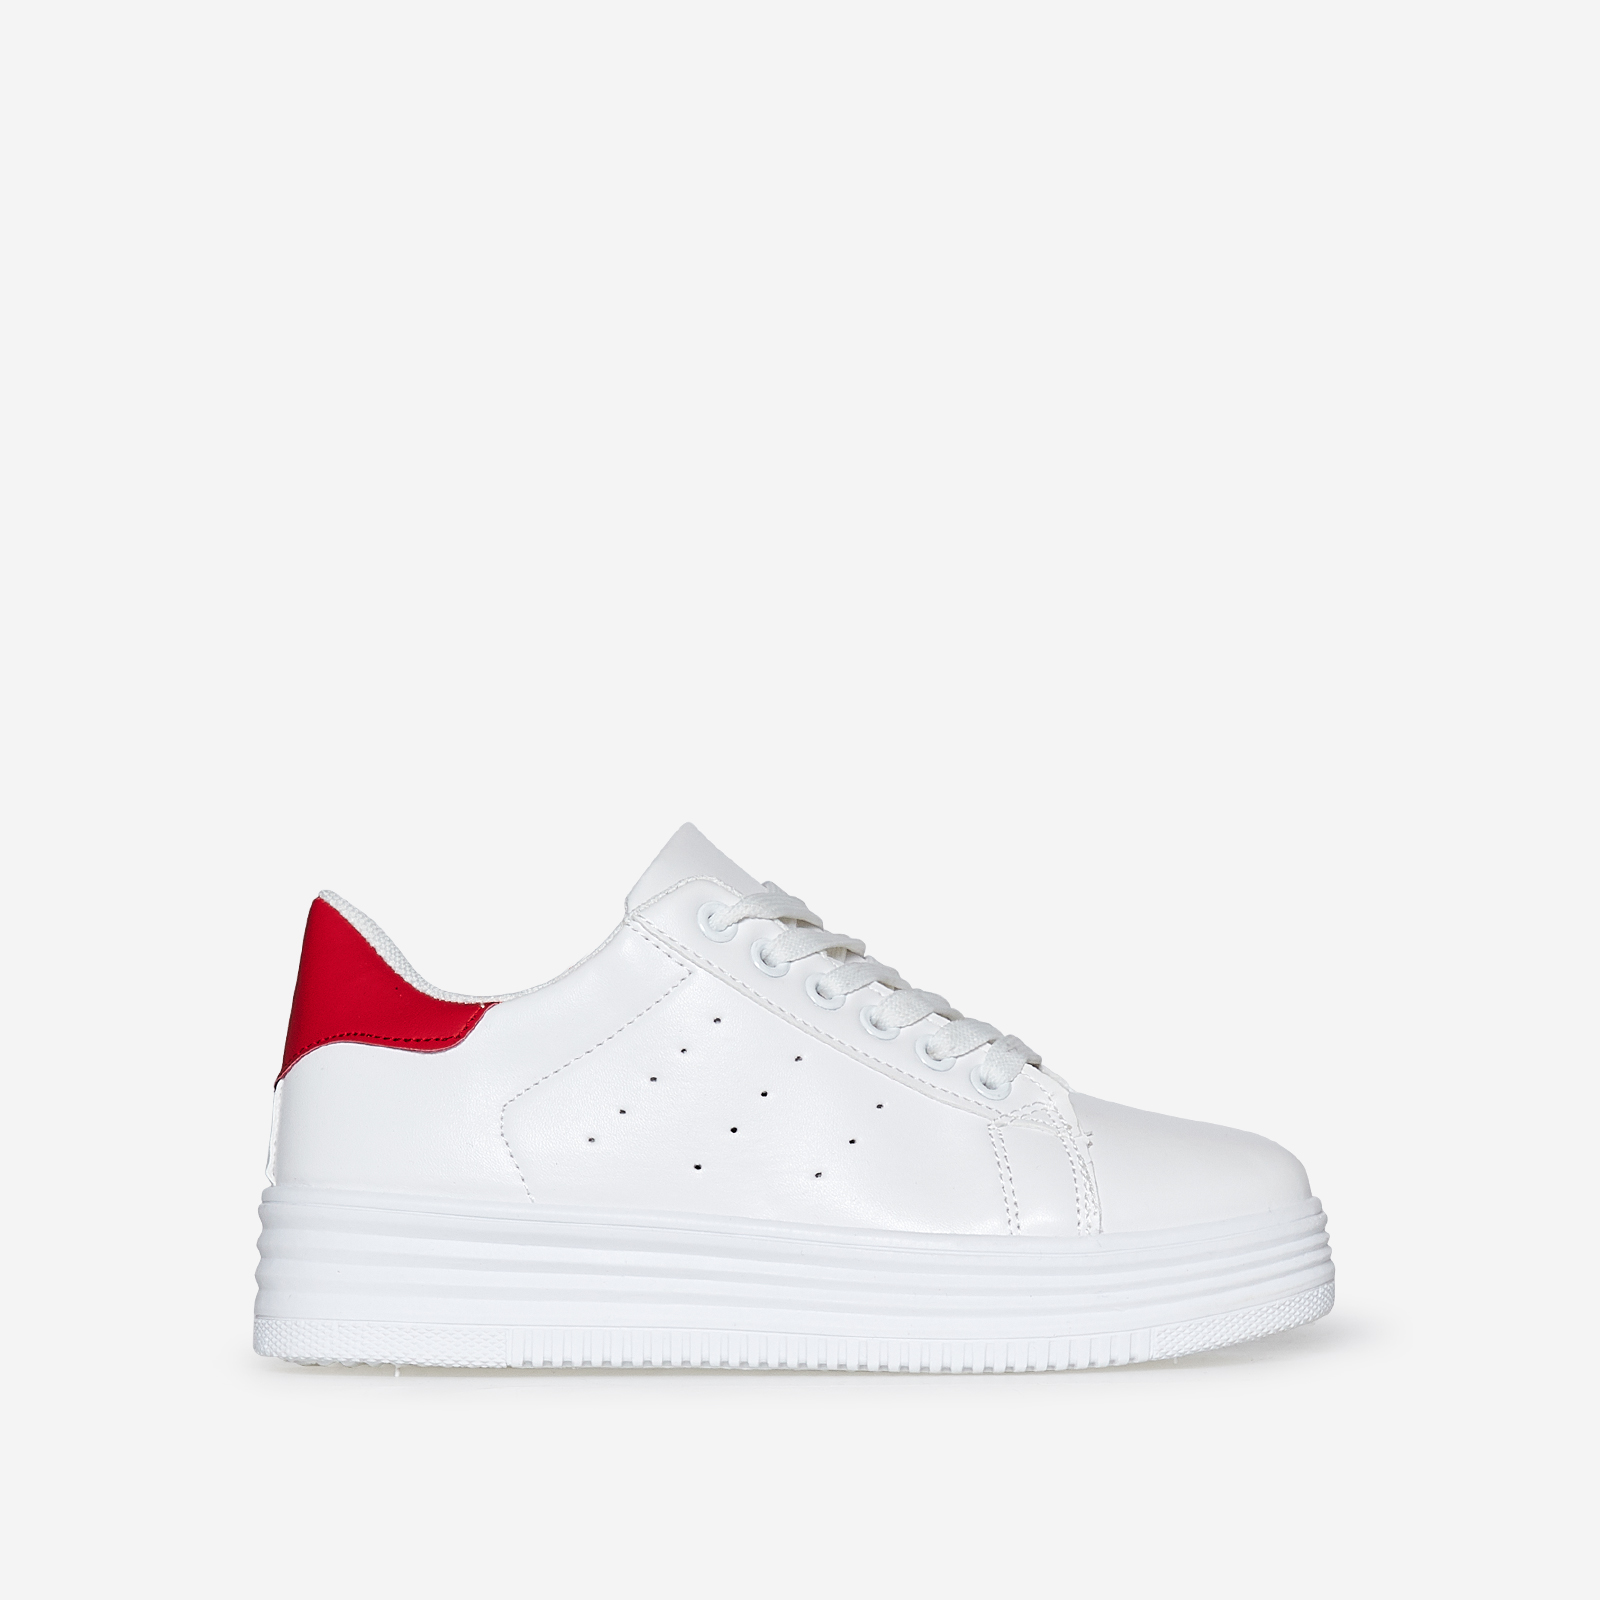 Horton Oversized Trainer With Red Heel Tab In White Faux Leather